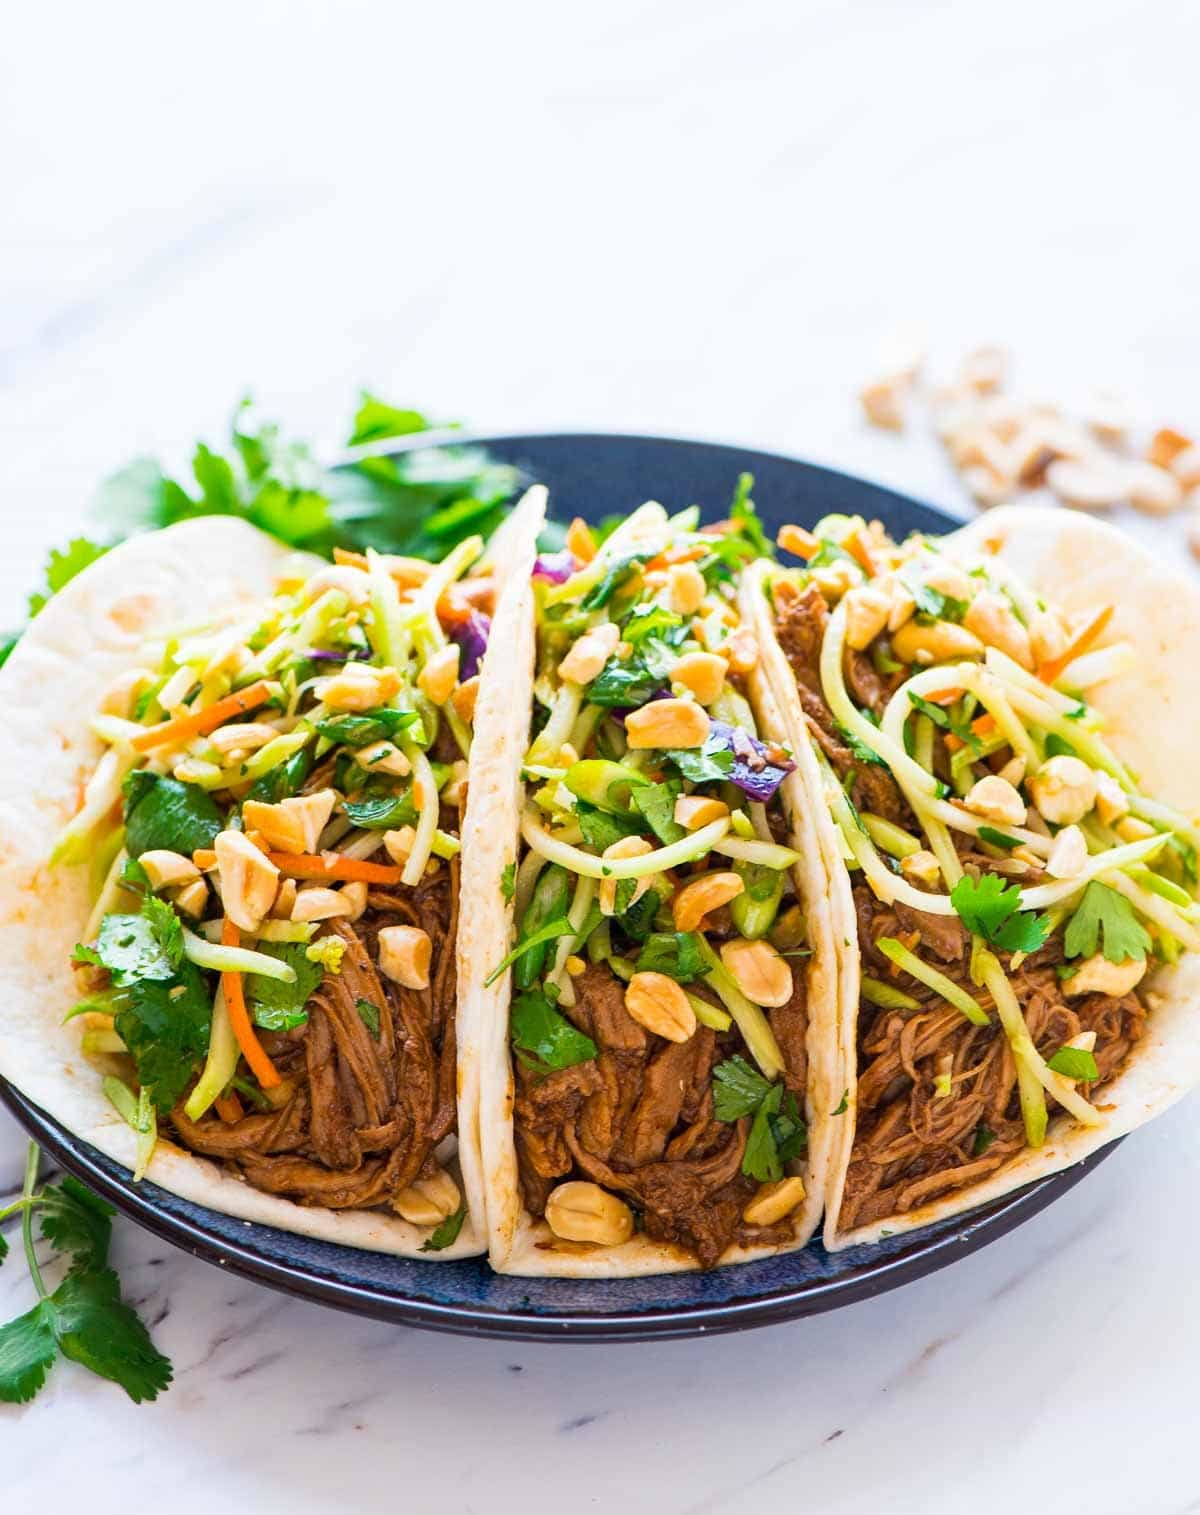 Melt-in-your-mouth Asian Pulled Pork Tacos, topped with crunchy peanut broccoli slaw. EASY, healthy crockpot recipe. Recipe at wellplated.com | @wellplated